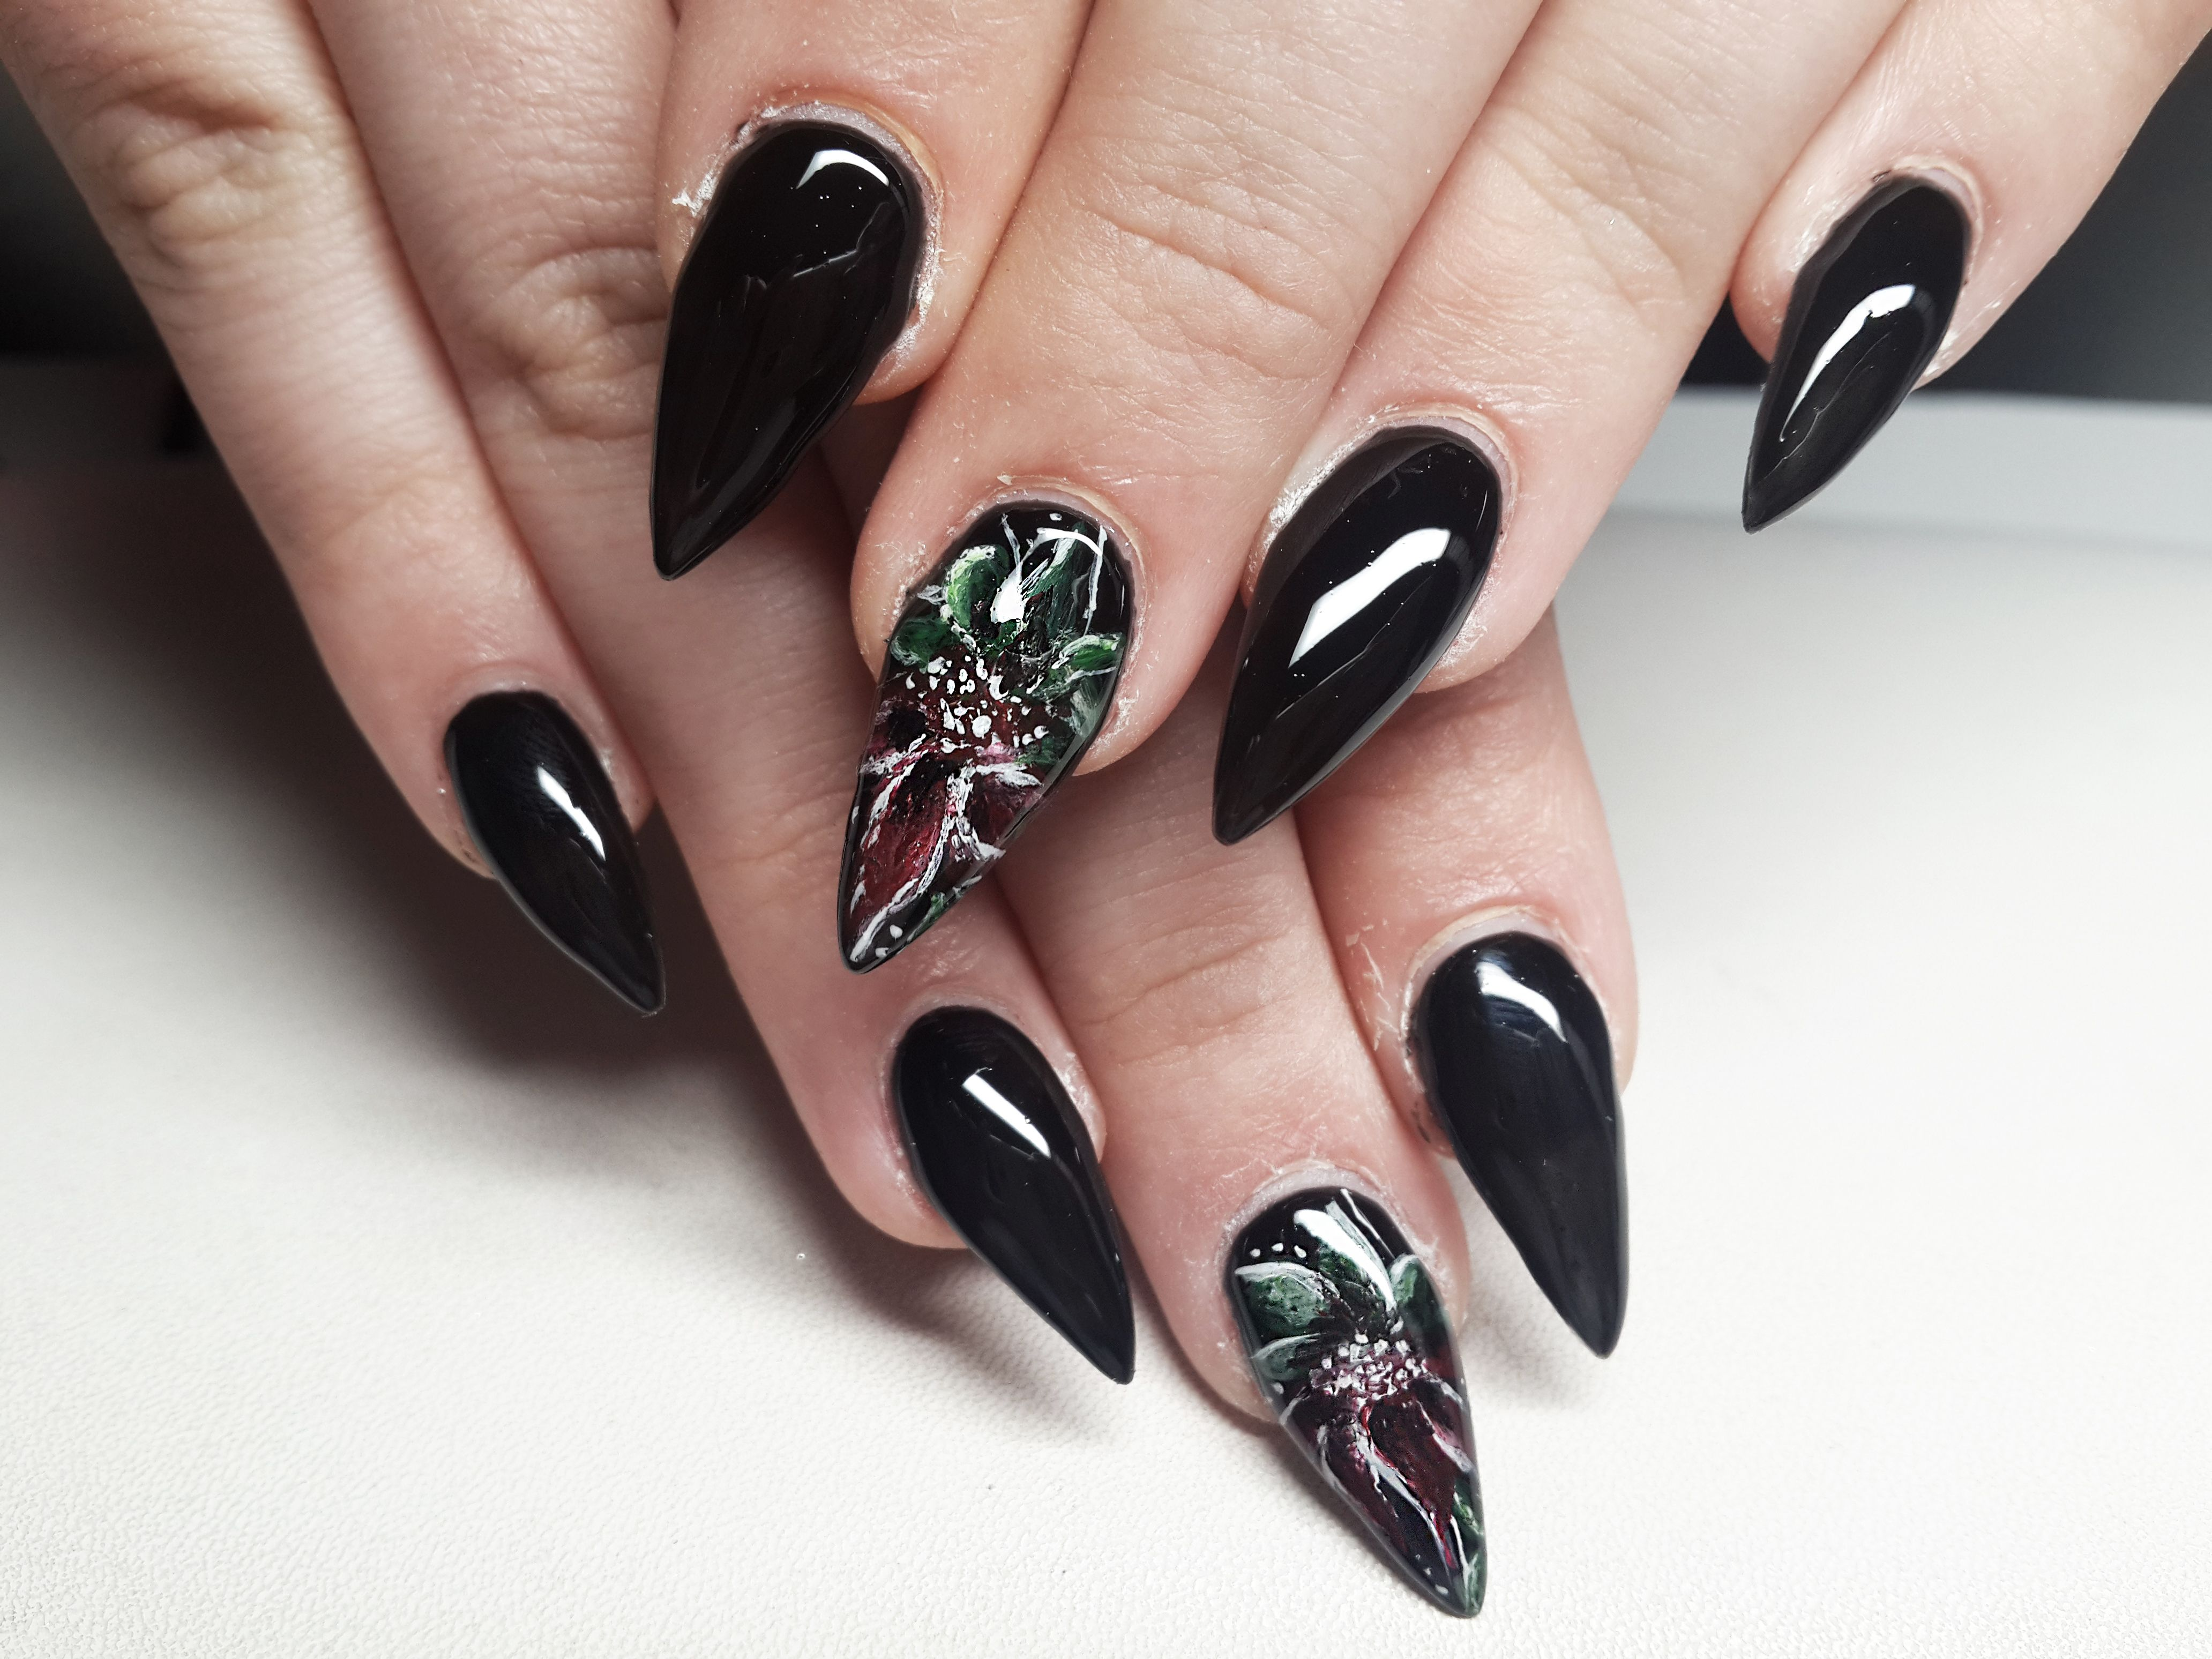 Stiletto flower nail art my nails pinterest flower nail art stiletto flower nail art prinsesfo Image collections